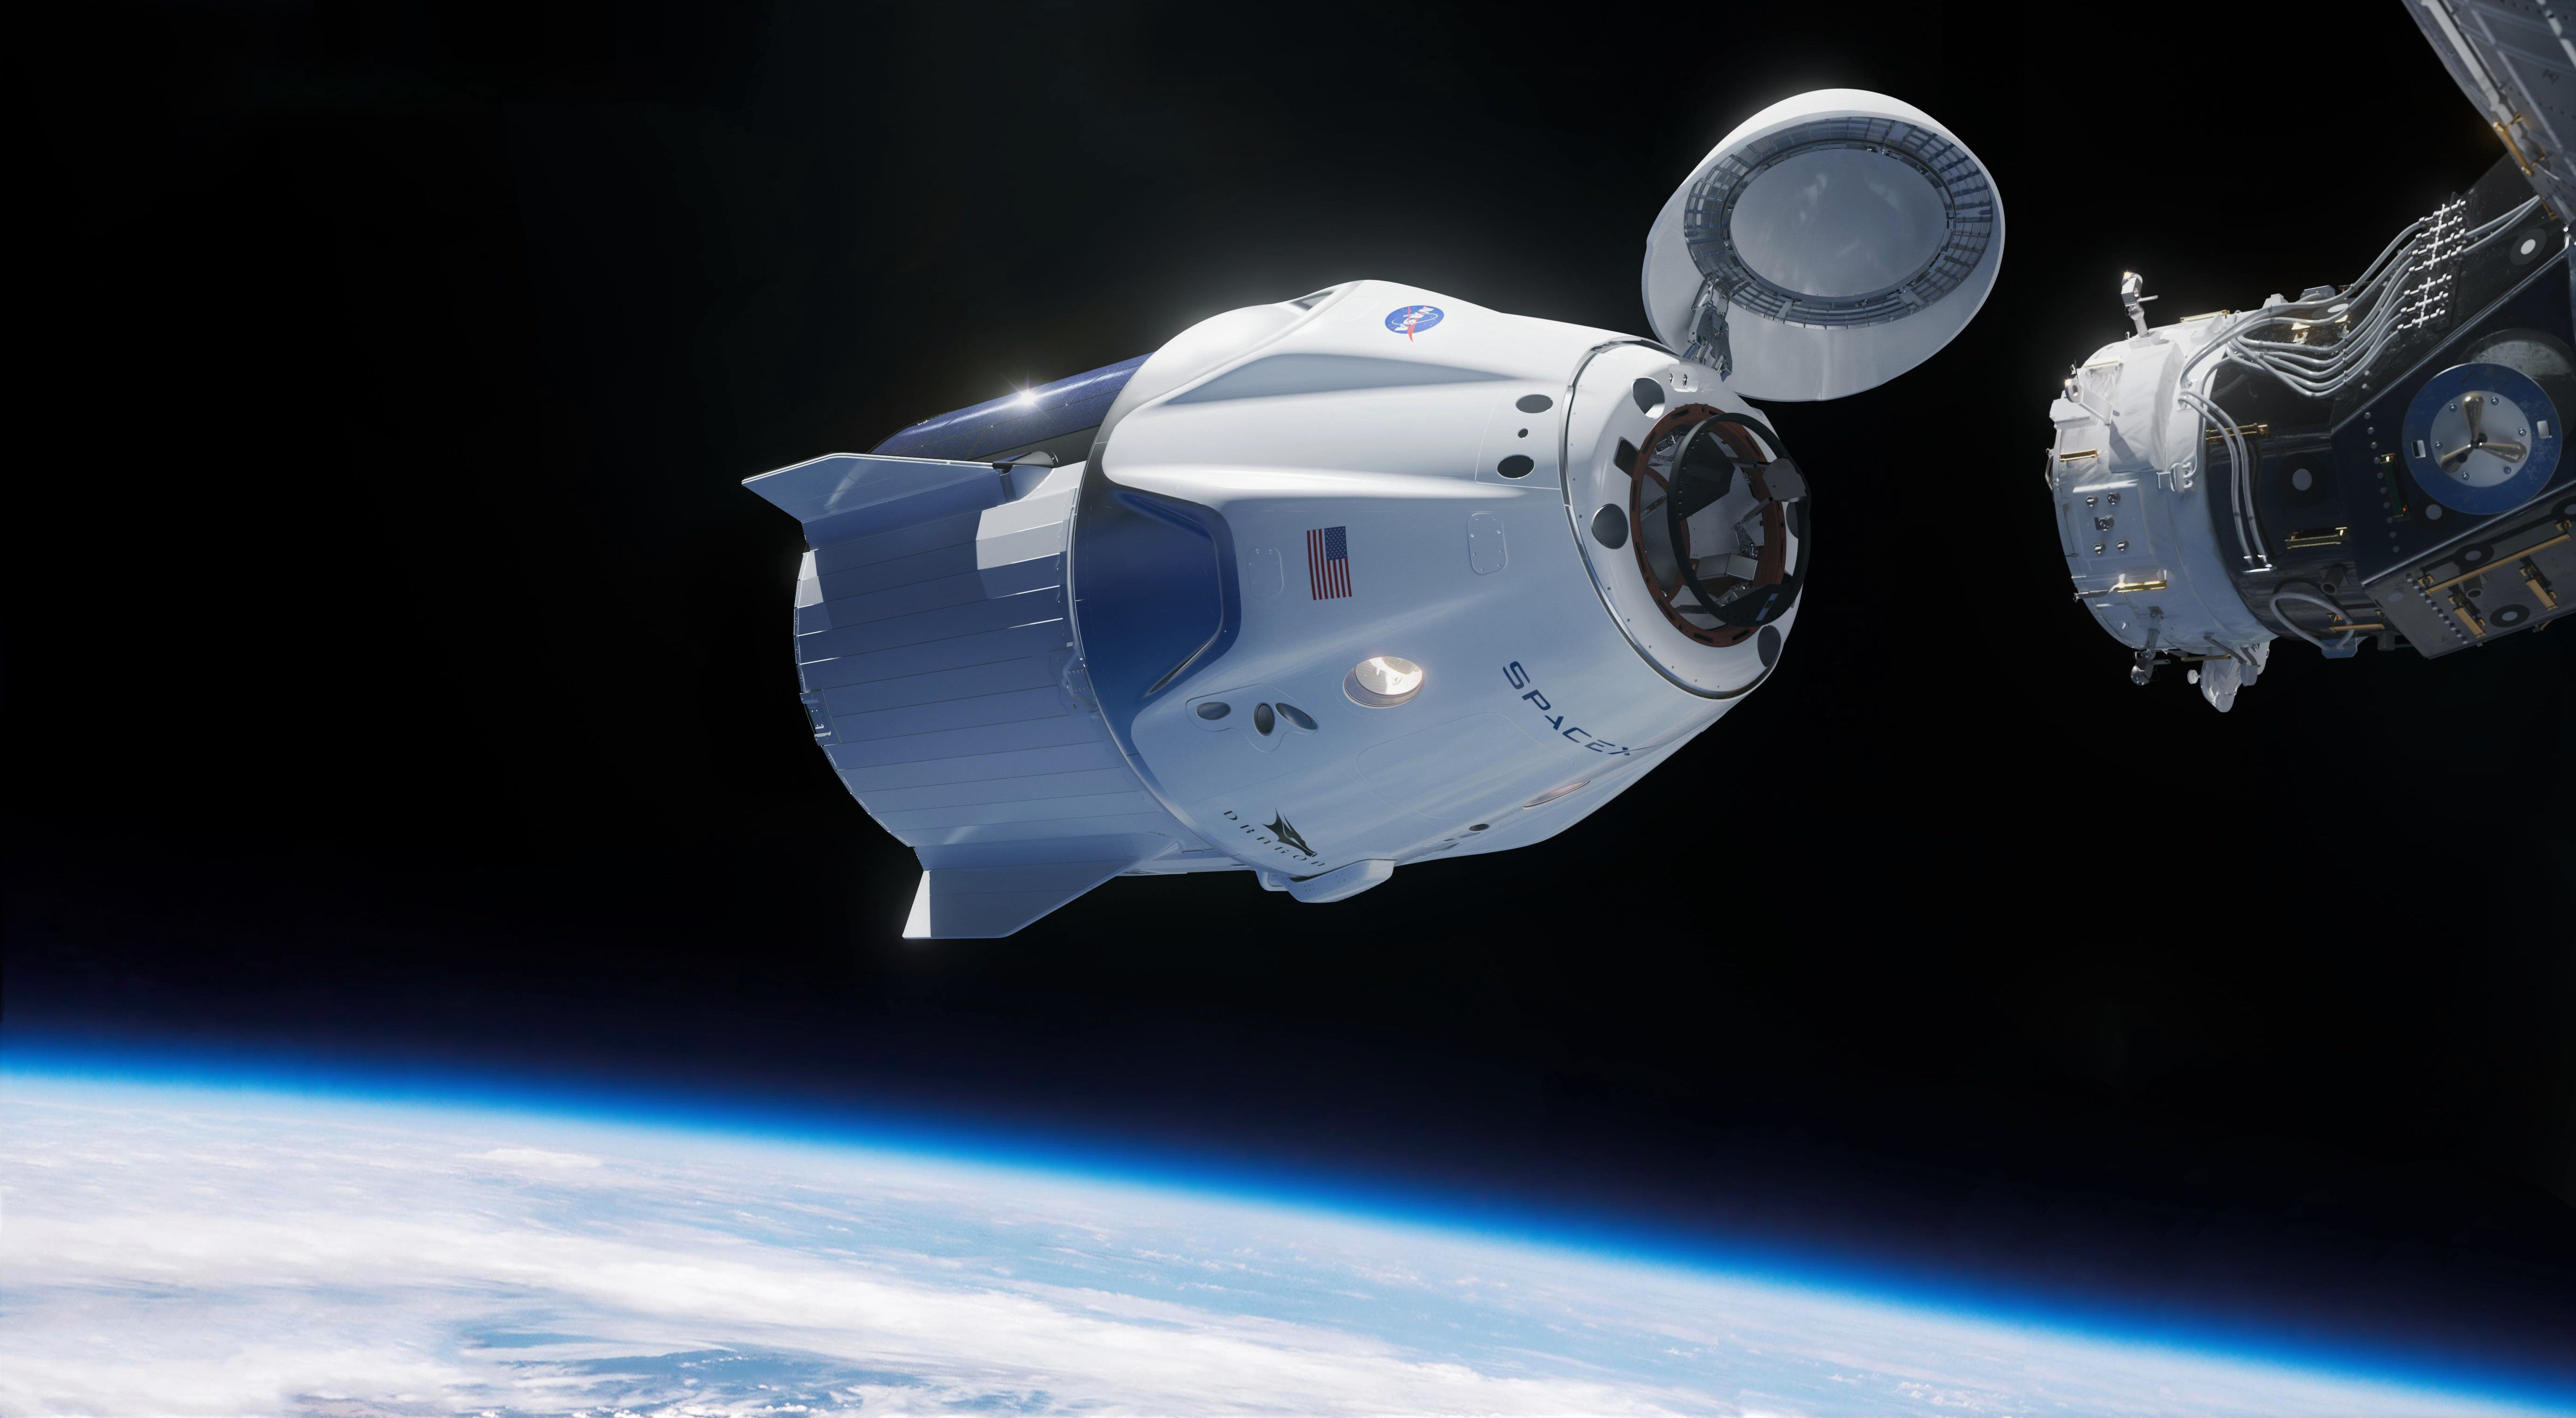 LYACrew-Dragon-approaches-the-ISS-SpaceX-edit 2